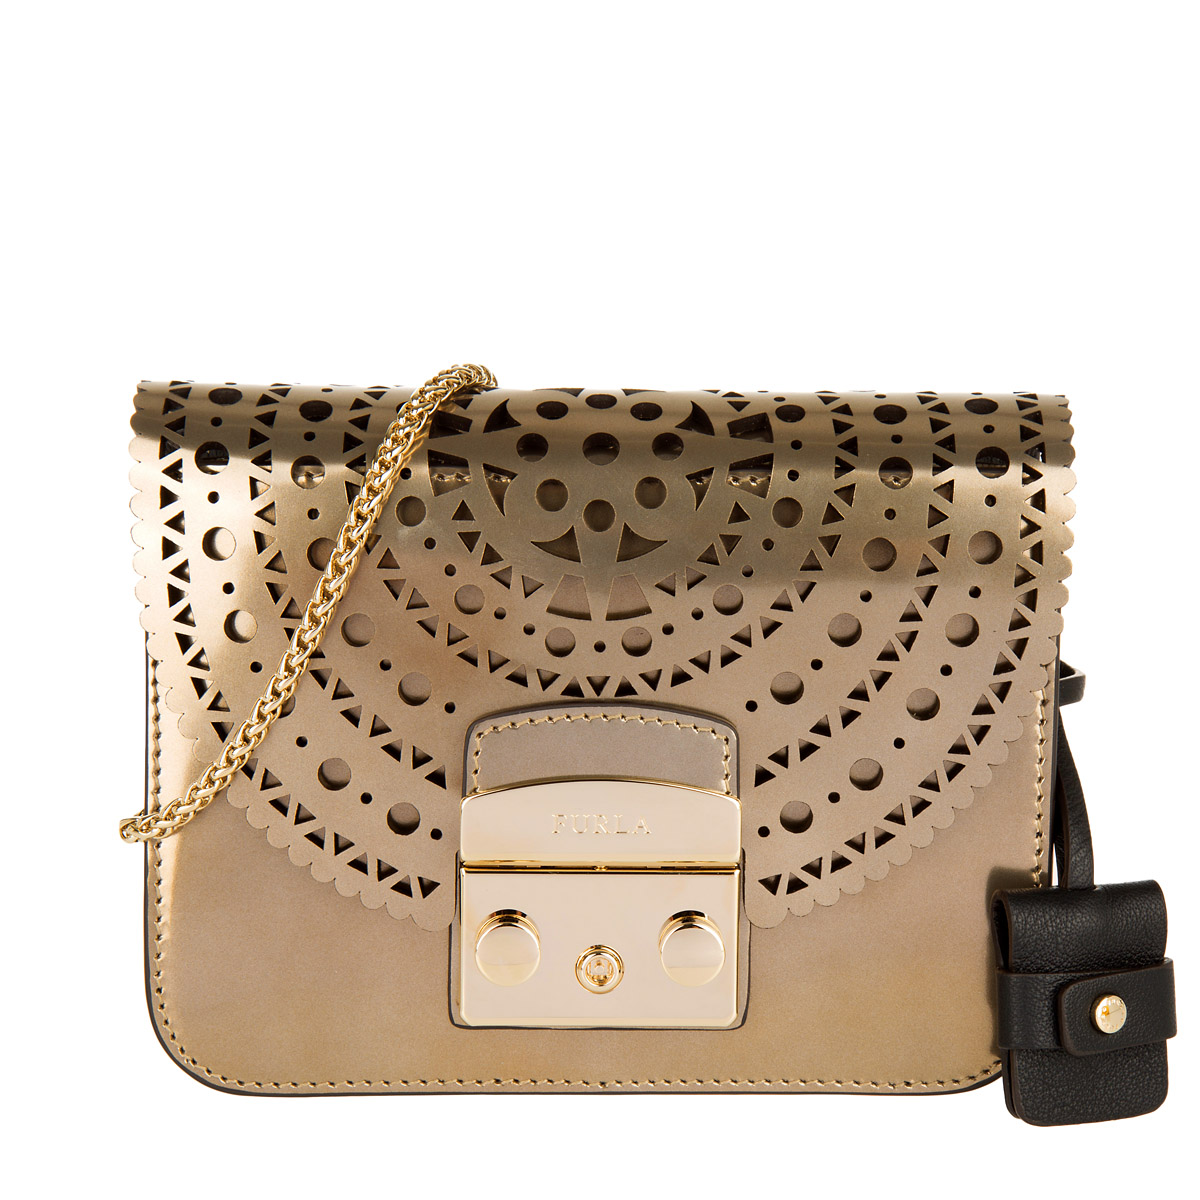 Fashionette.de Furla Body Bag